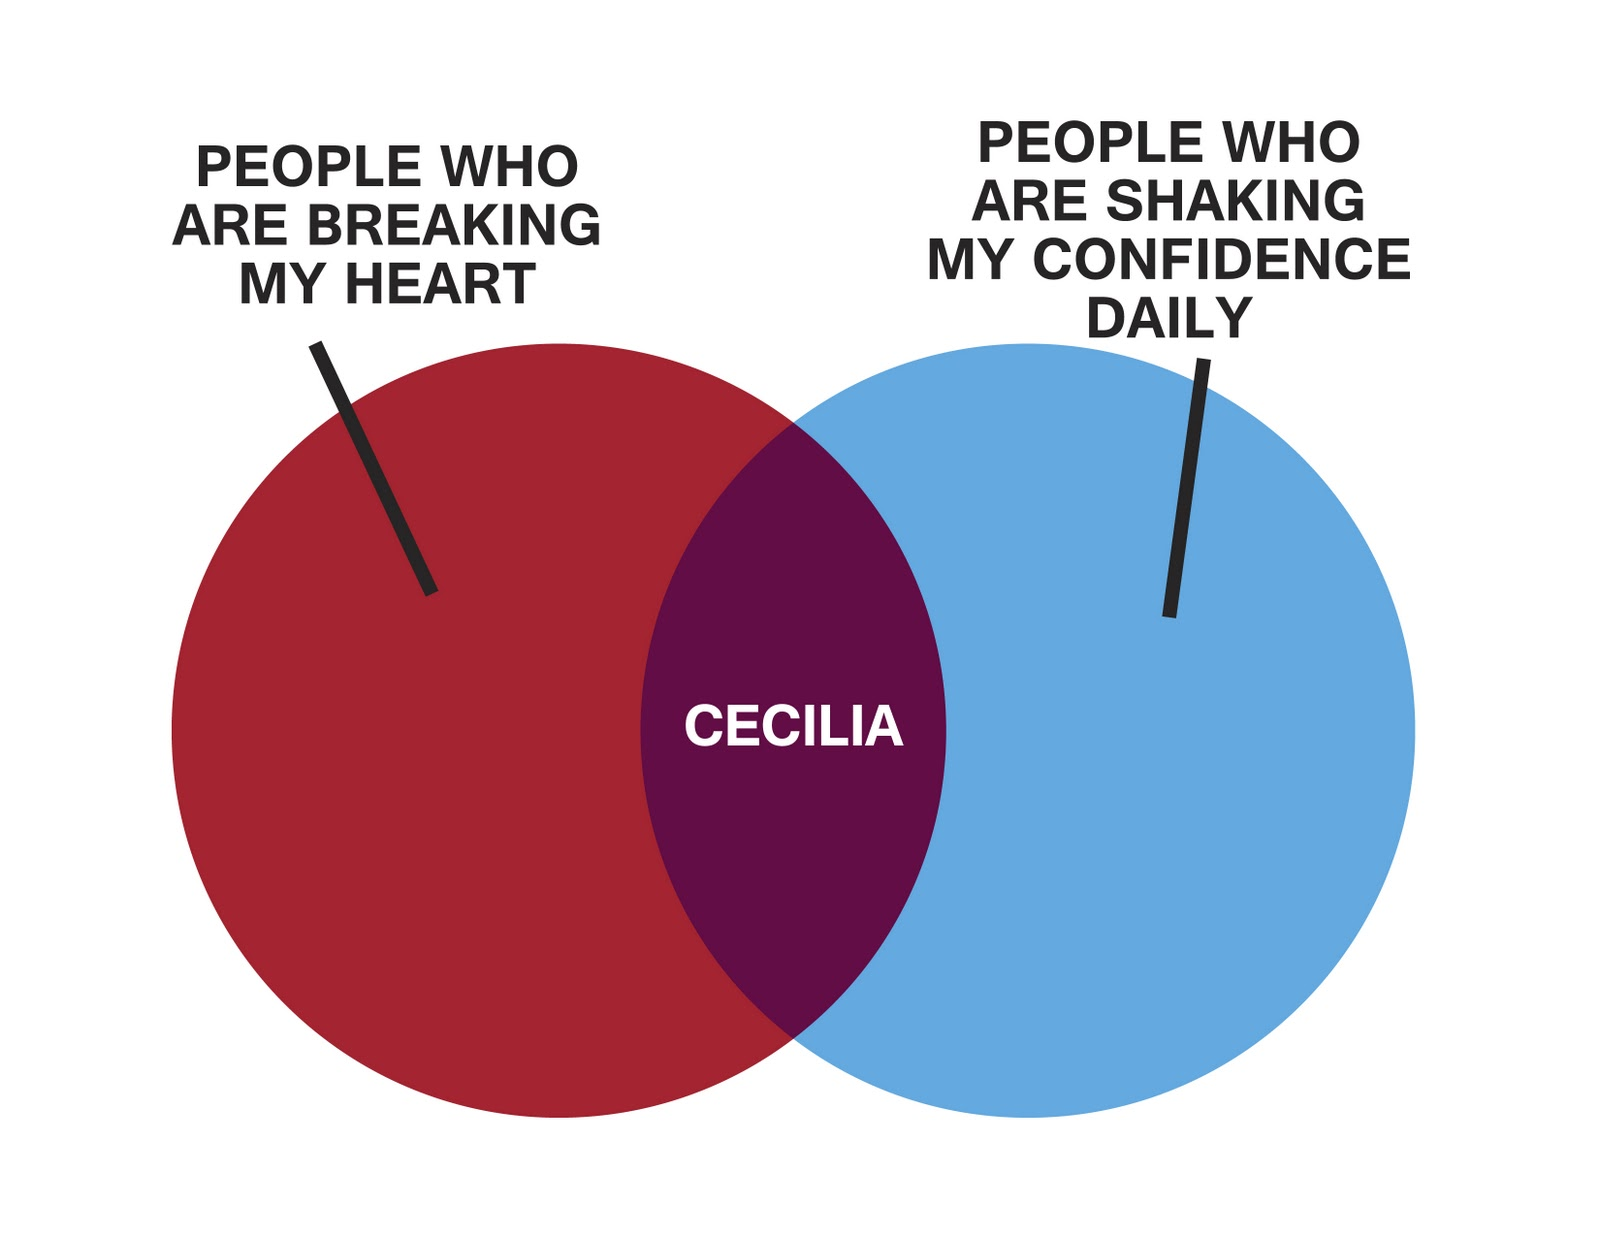 Still my favorite Venn diagram : funny